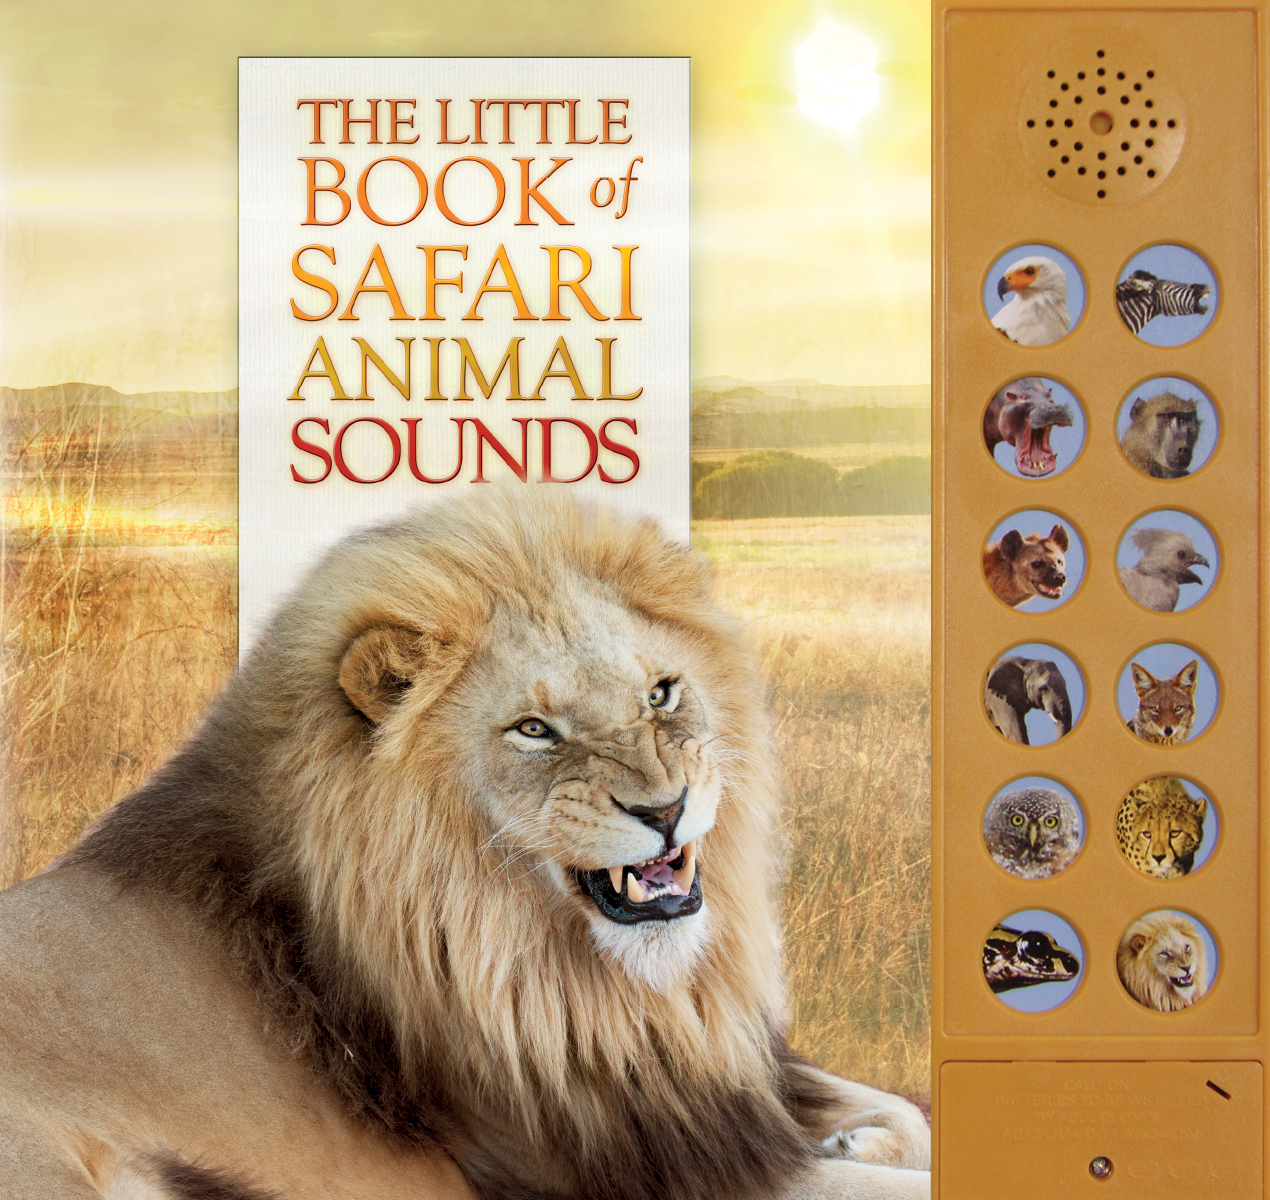 Little Book of Safari Animal Sounds (The) | Documentary